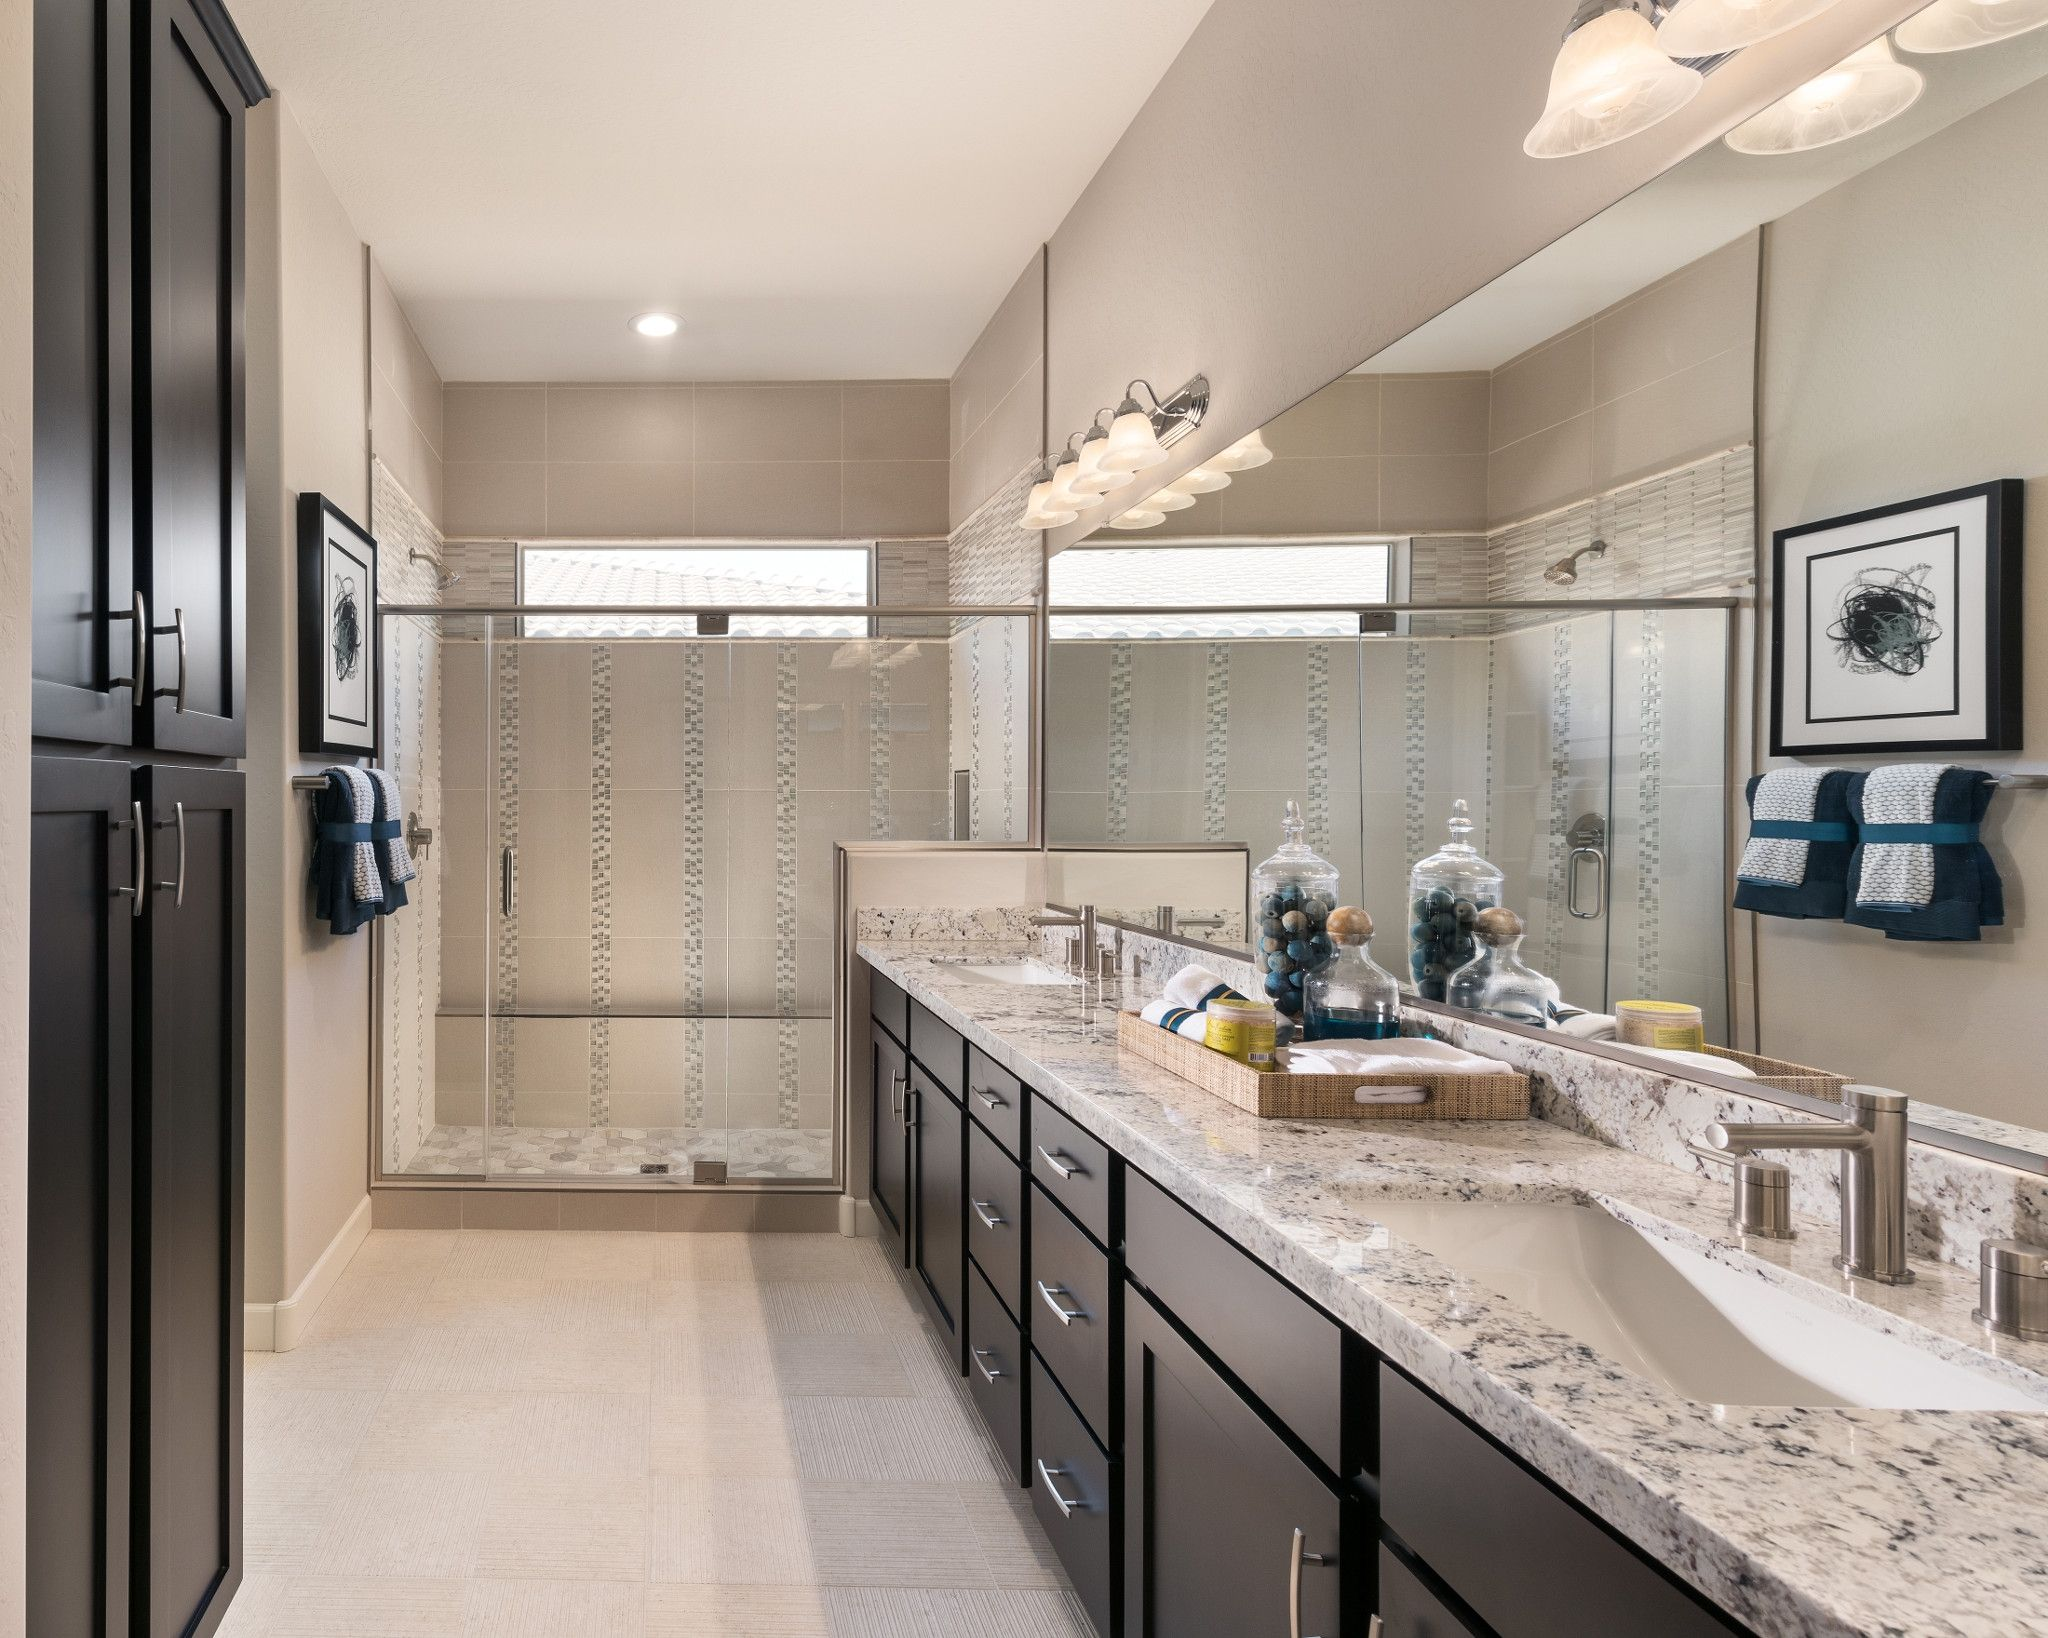 Bathroom featured in the Concentric By Shea Homes - Trilogy in Phoenix-Mesa, AZ